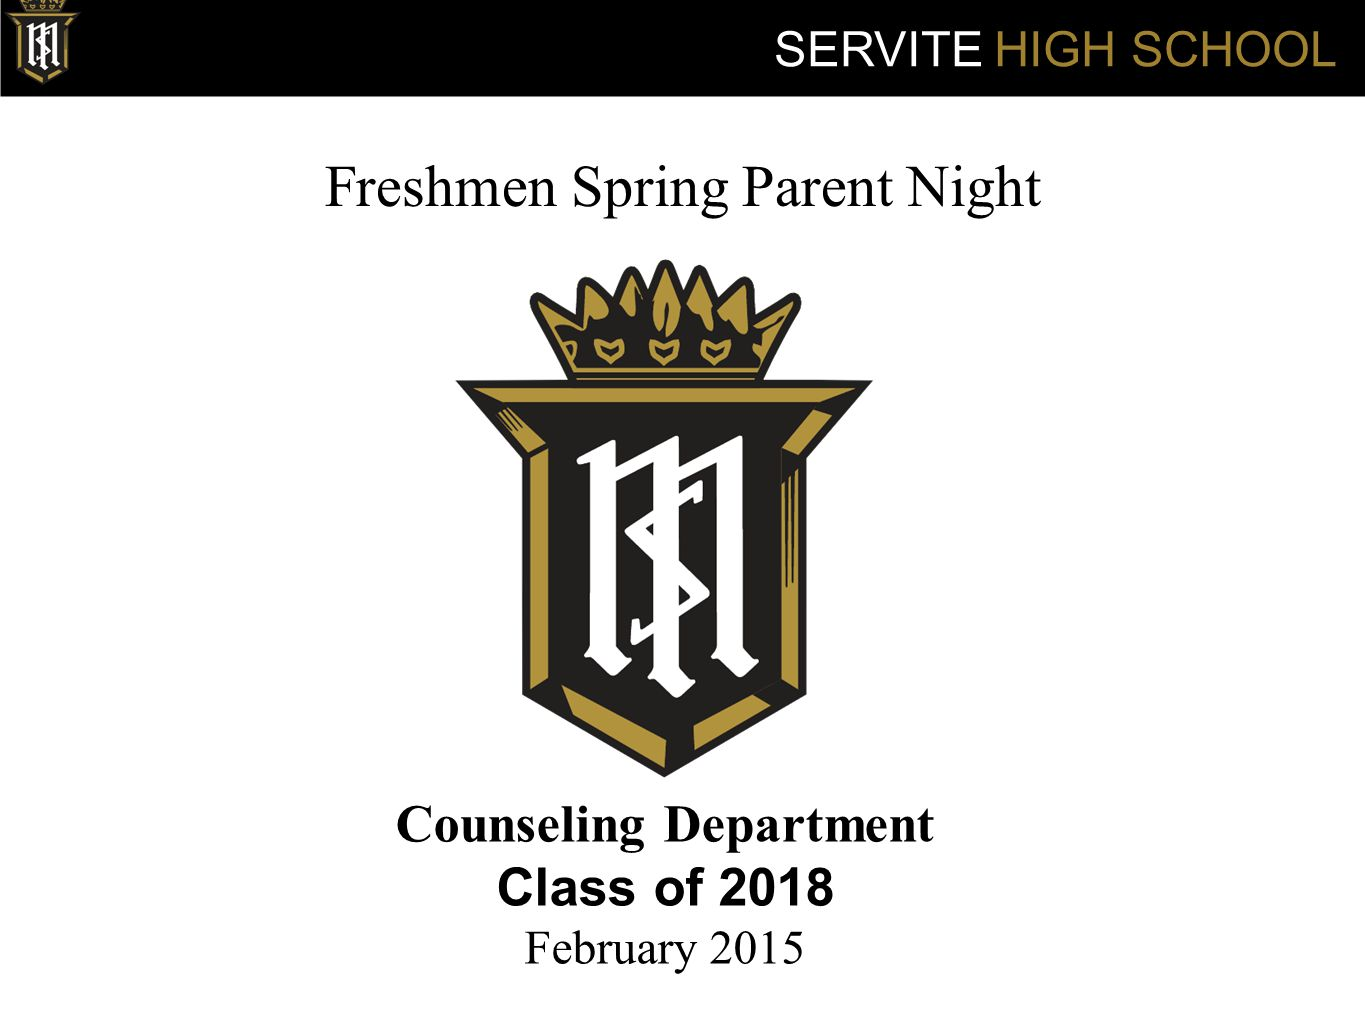 Freshmen Spring Parent Night Counseling Department Class of 2018 February 2015 SERVITE HIGH SCHOOL